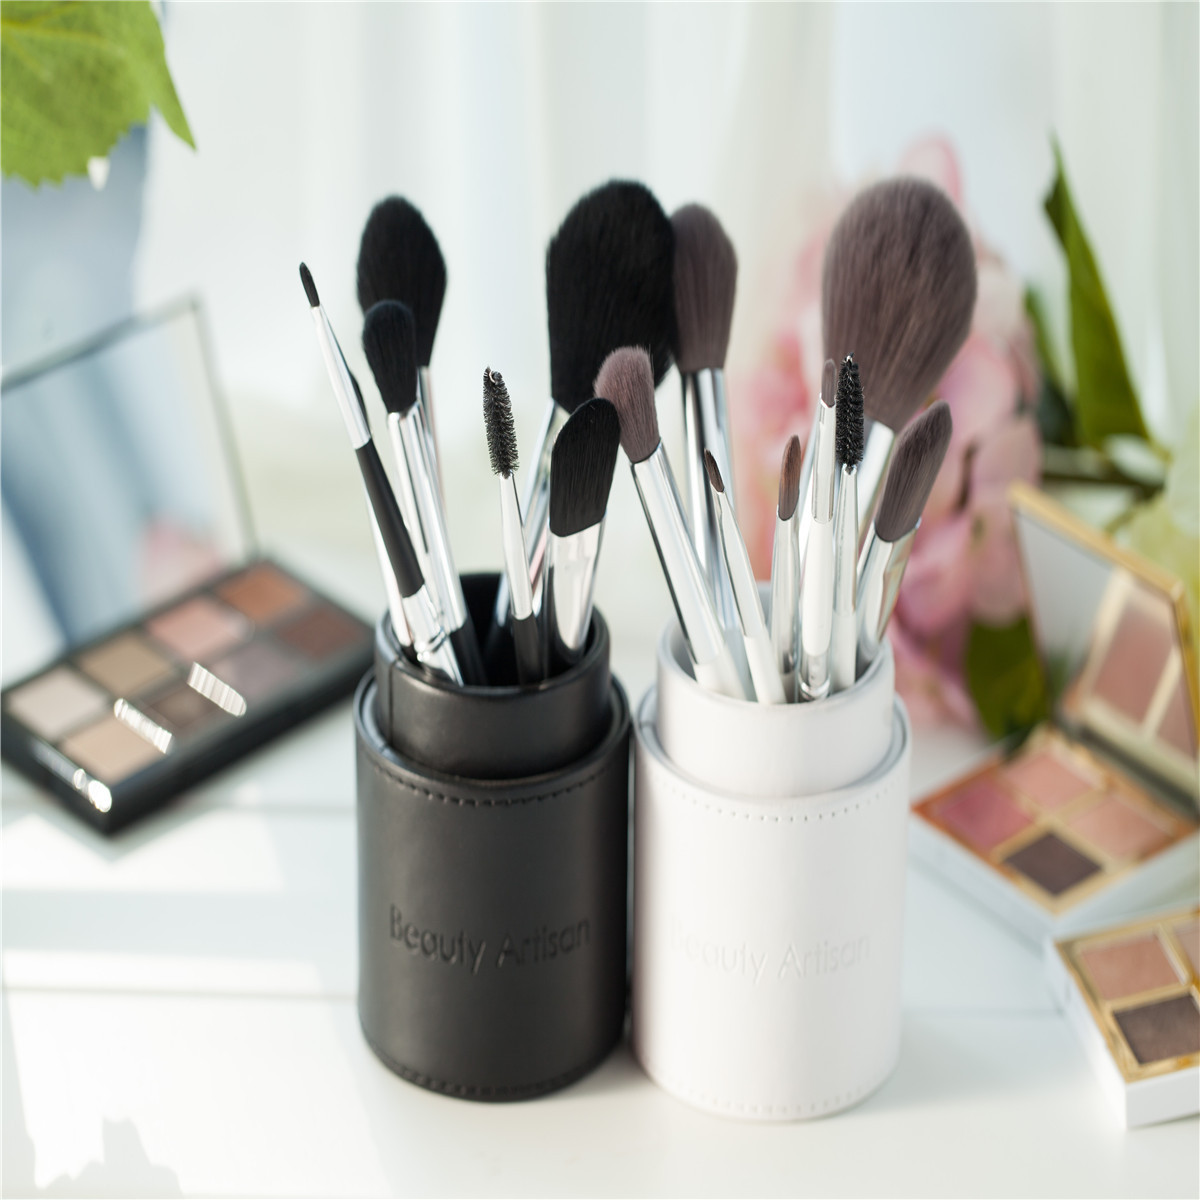 8Pcs Makeup Brushes Set Mixed Colors